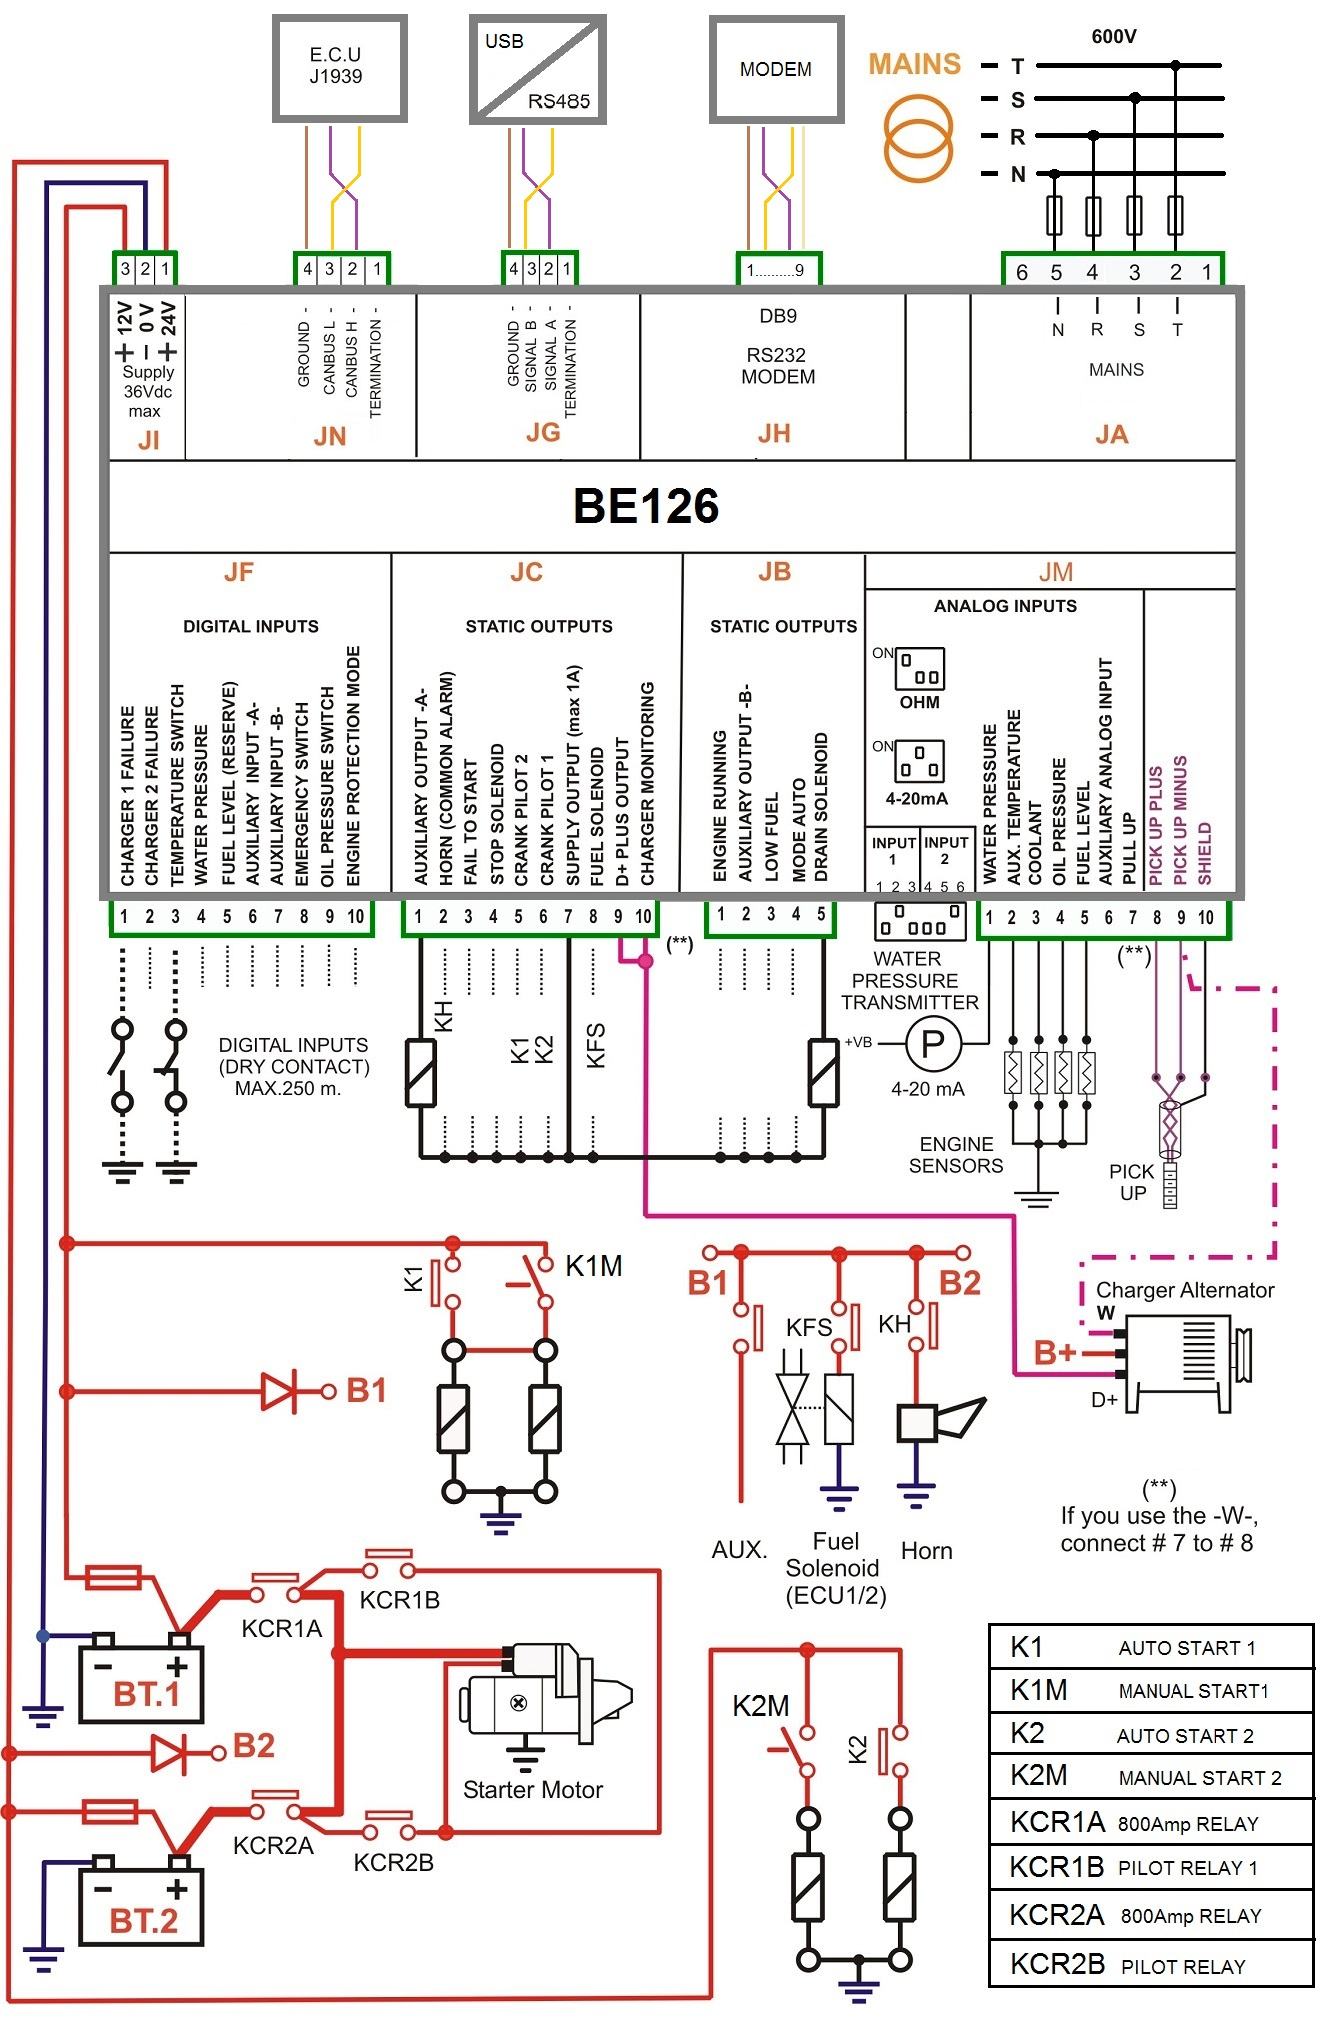 NFPA20 fire pump controller wiring diagram electrical control wiring diagram electrical service diagrams electrical control wiring diagram pdf at readyjetset.co